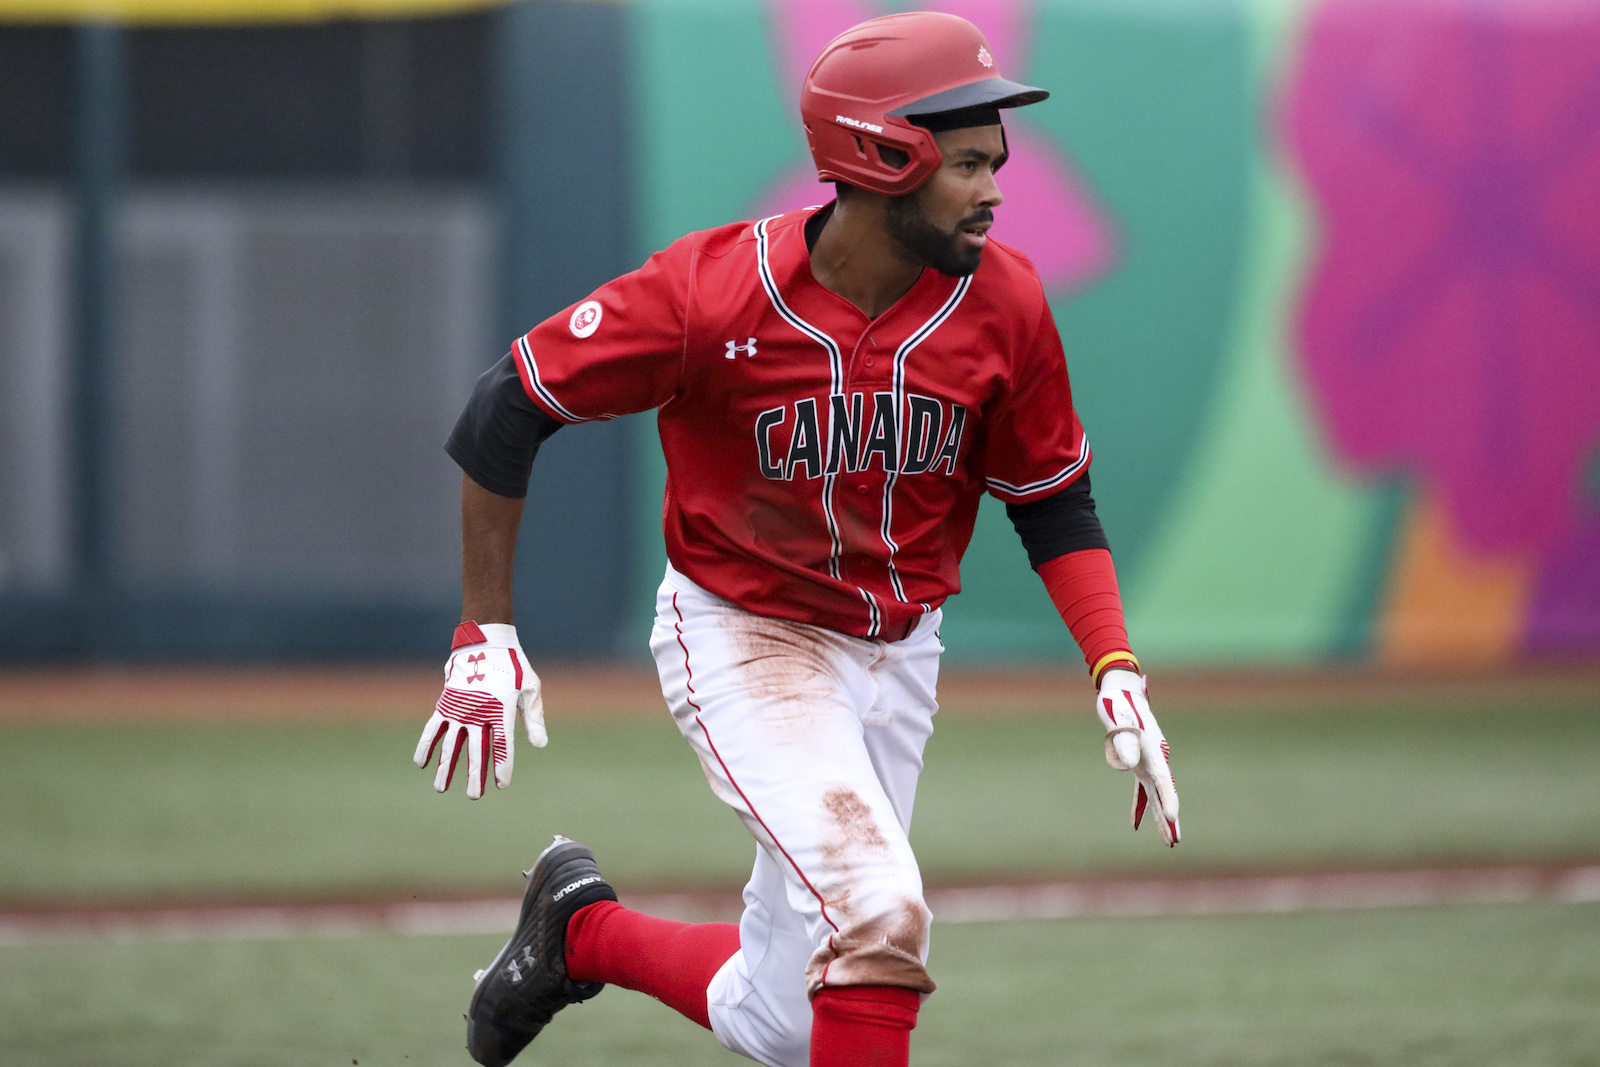 LIMA 2019: Canada blanks Argentina in Pan Am opener